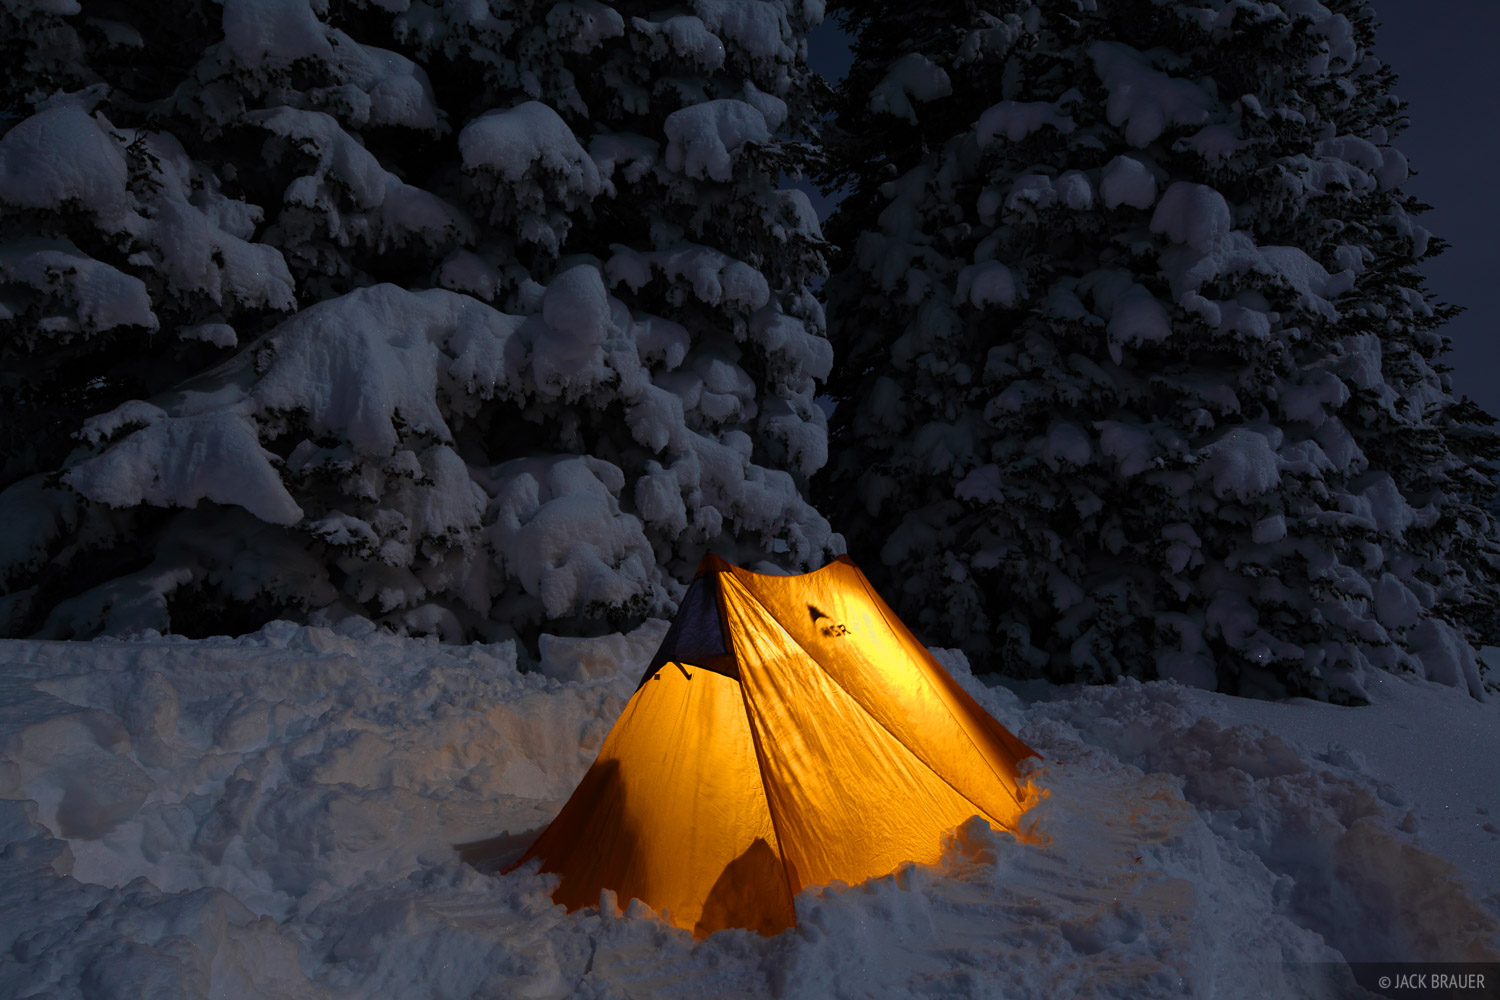 winter camping, tent, Table Mountain, photo